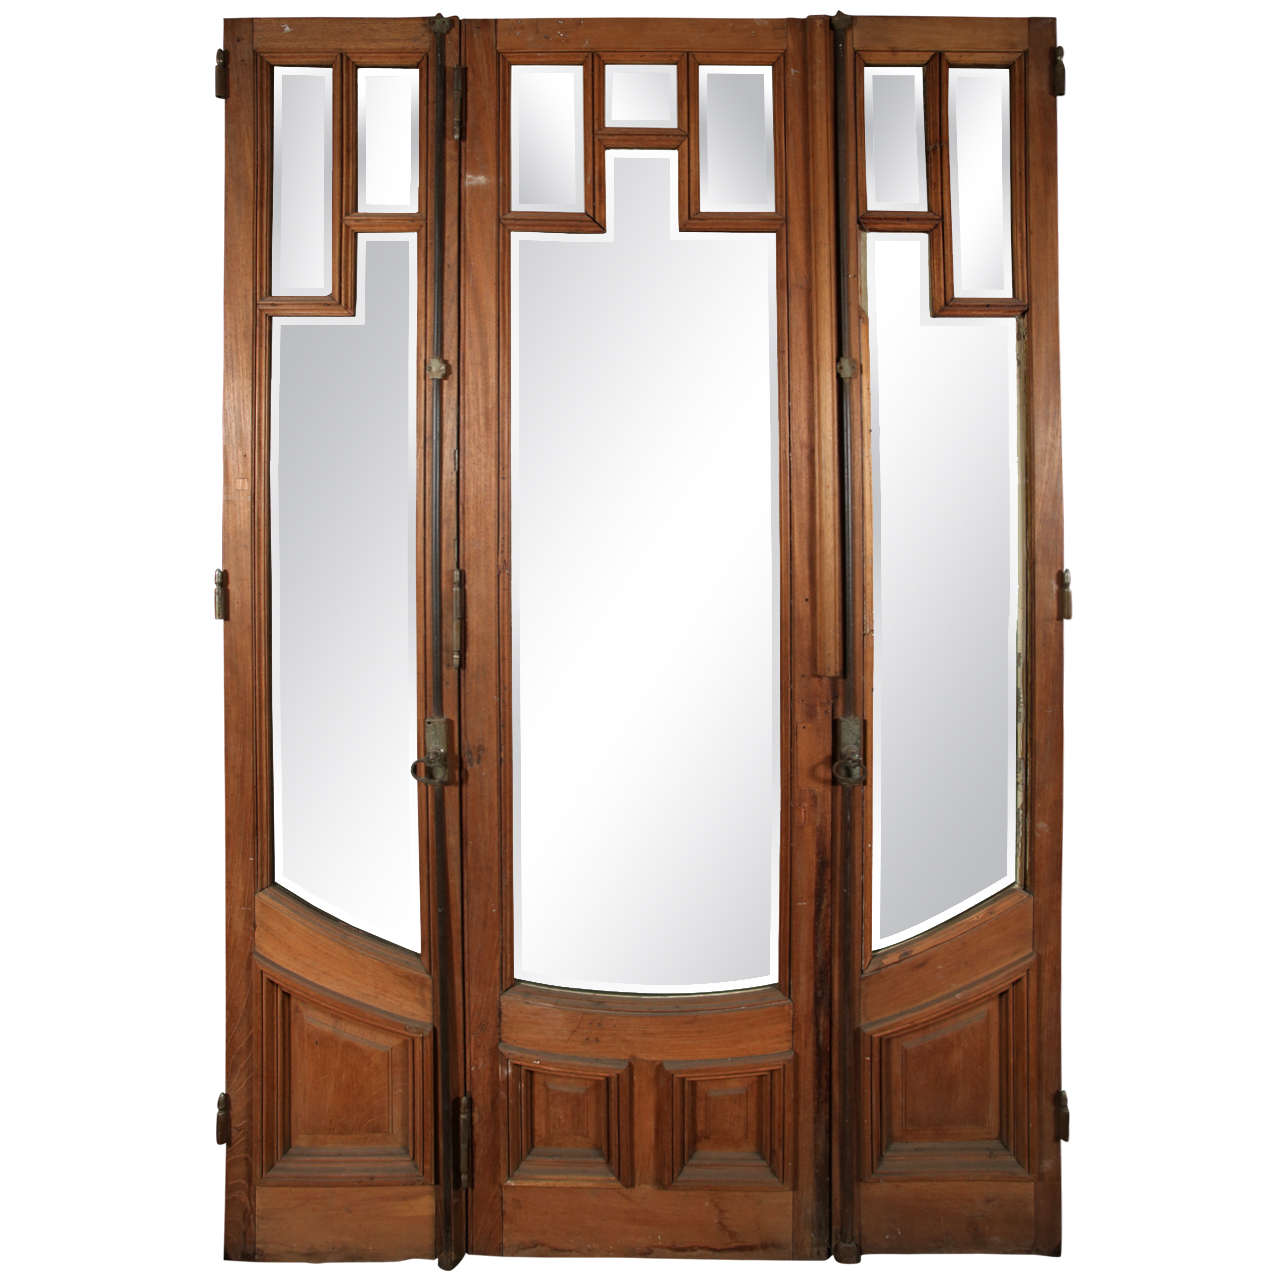 Art deco three door set with beveled glass at 1stdibs for Art glass windows and doors